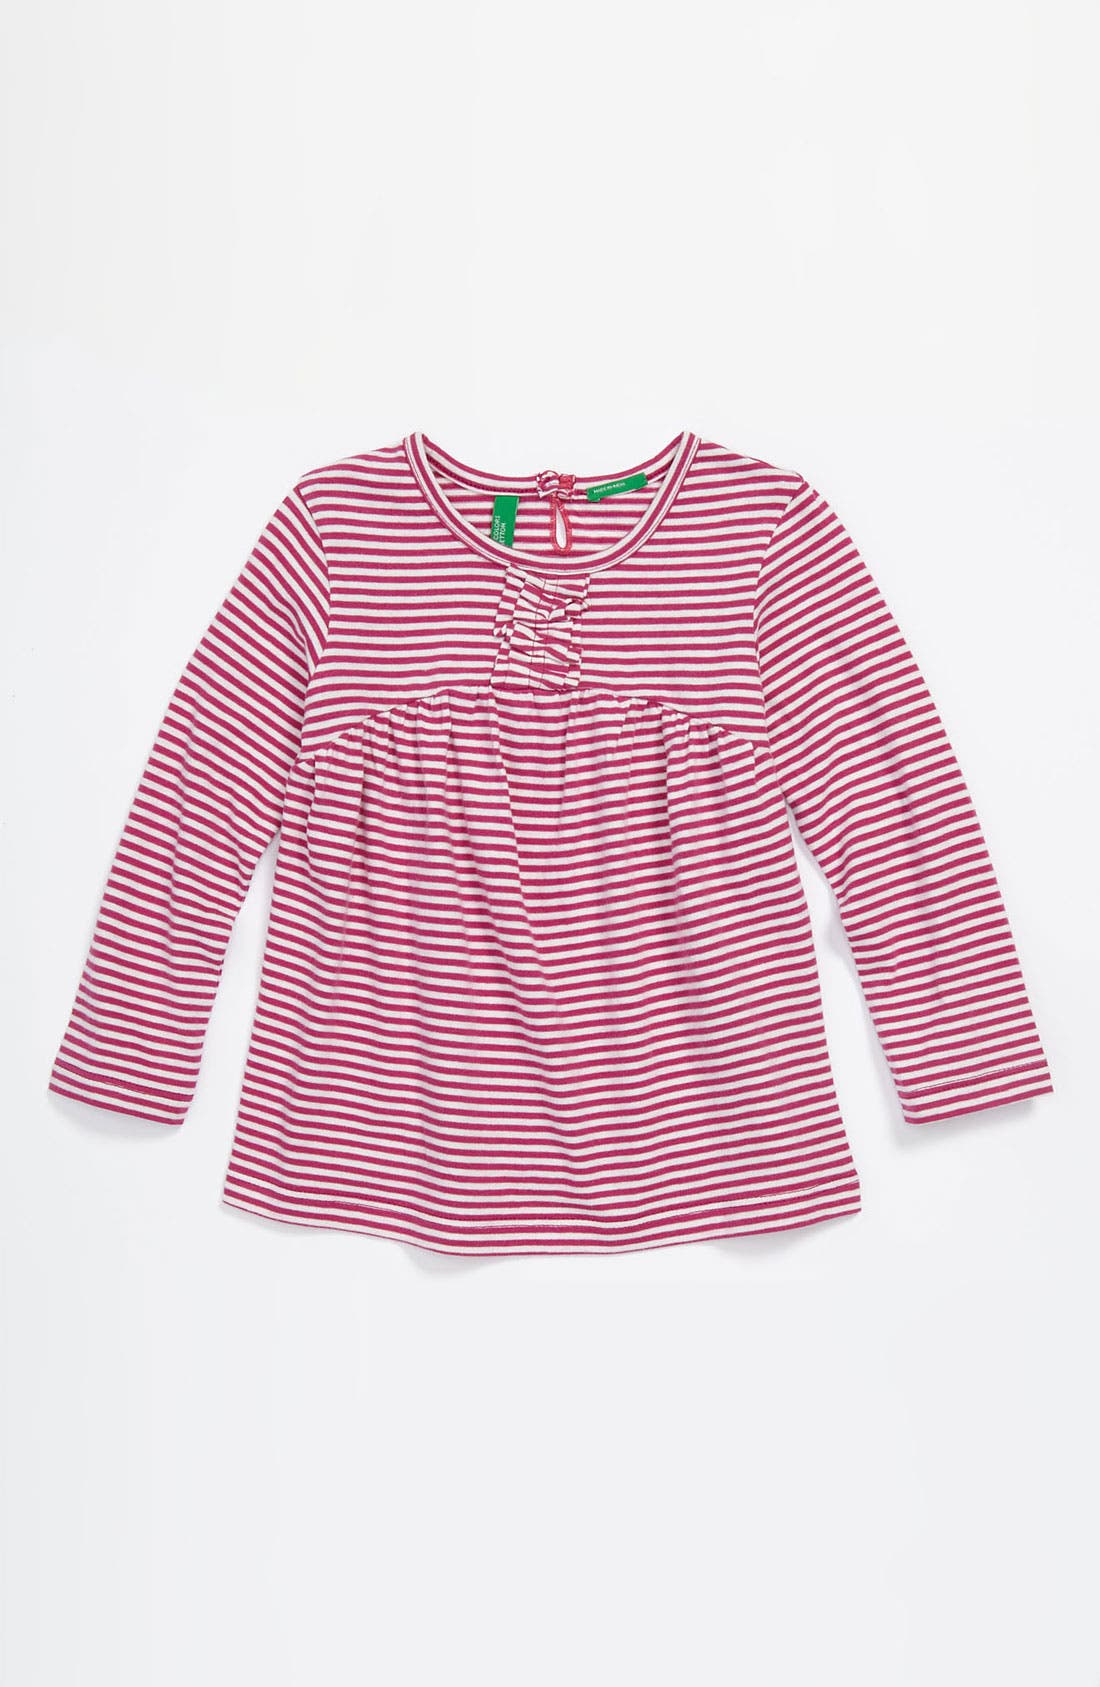 Main Image - United Colors of Benetton Kids Stripe Ruffle Tee (Infant)